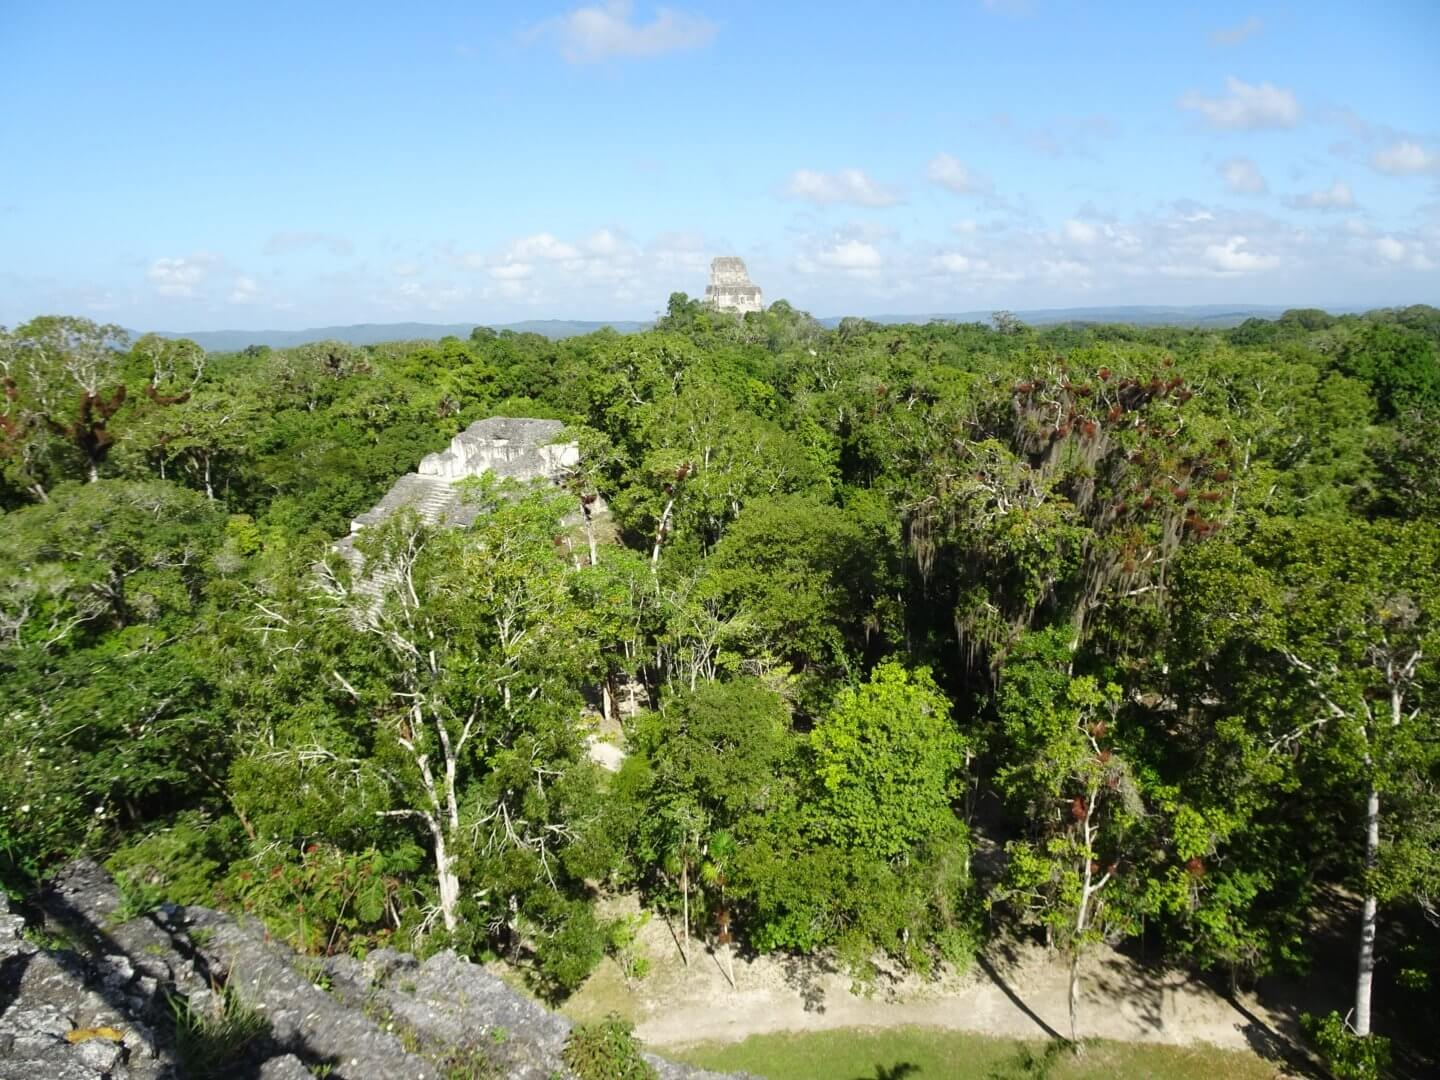 The view fro the Lost World pyramid Tikal Guatemala